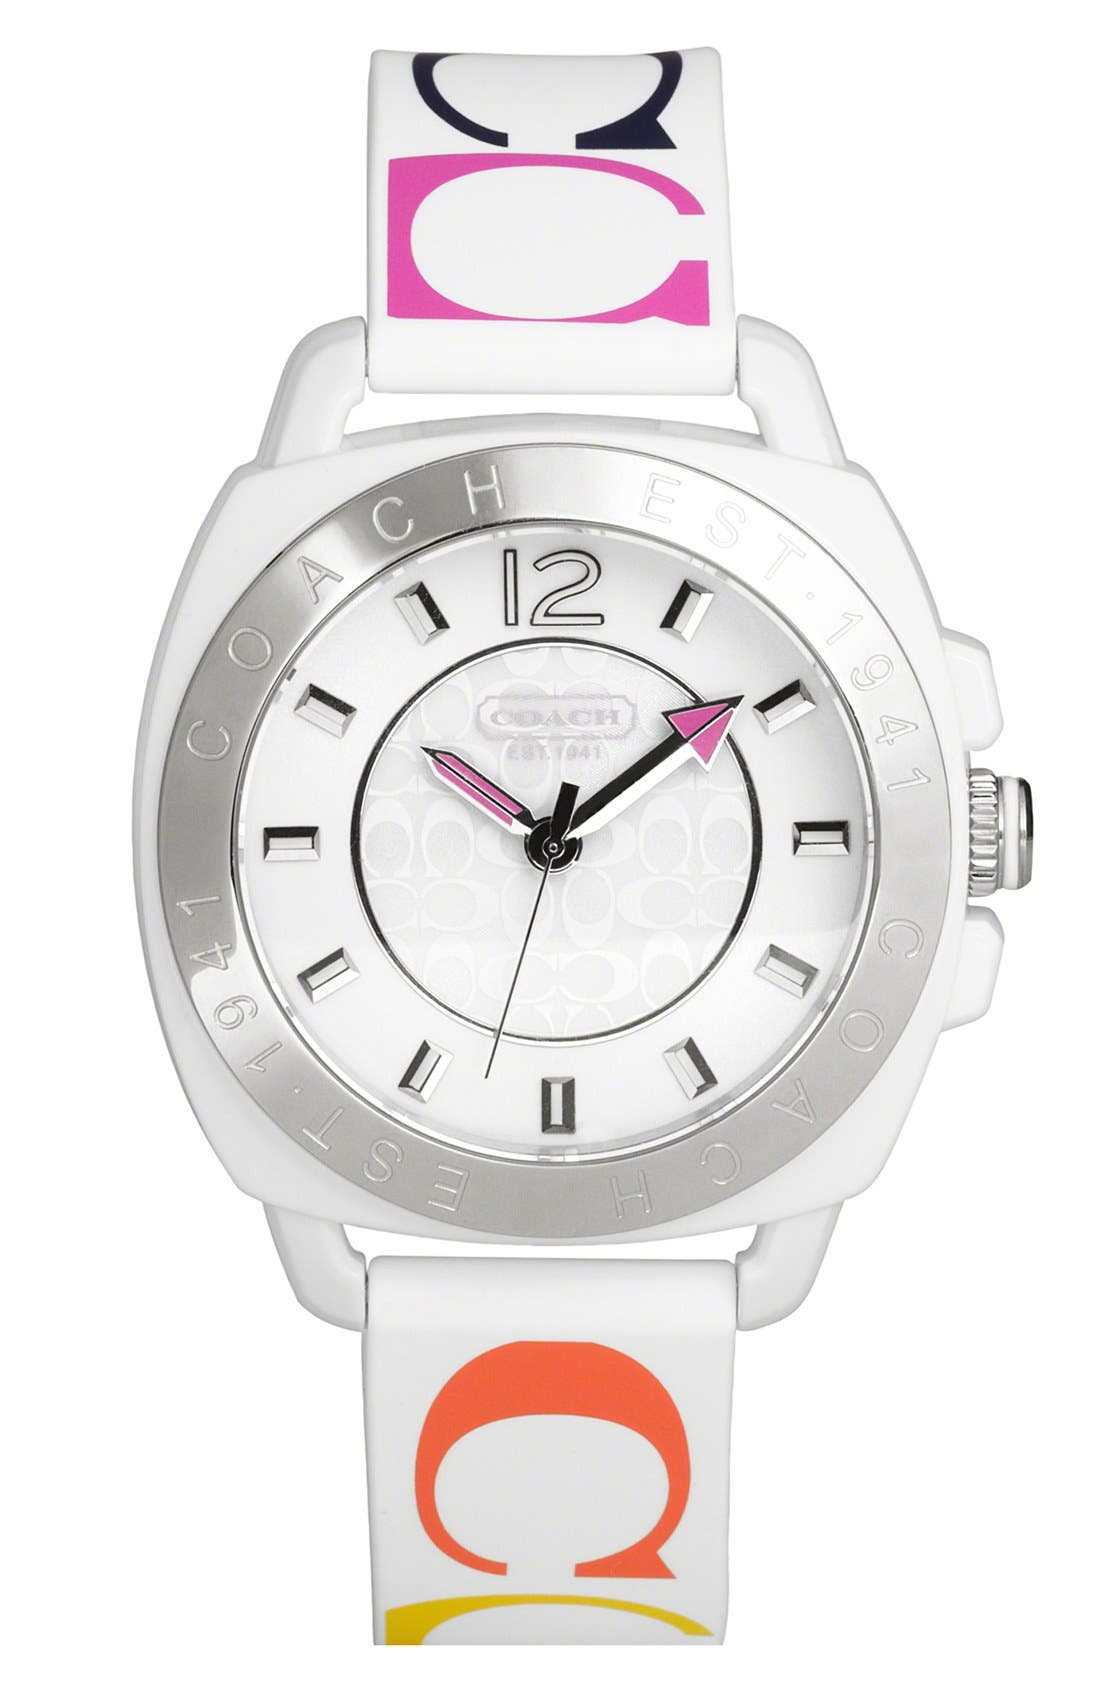 Alternate Image 1 Selected - COACH 'Boyfriend' Print Silicone Strap Watch, 40mm